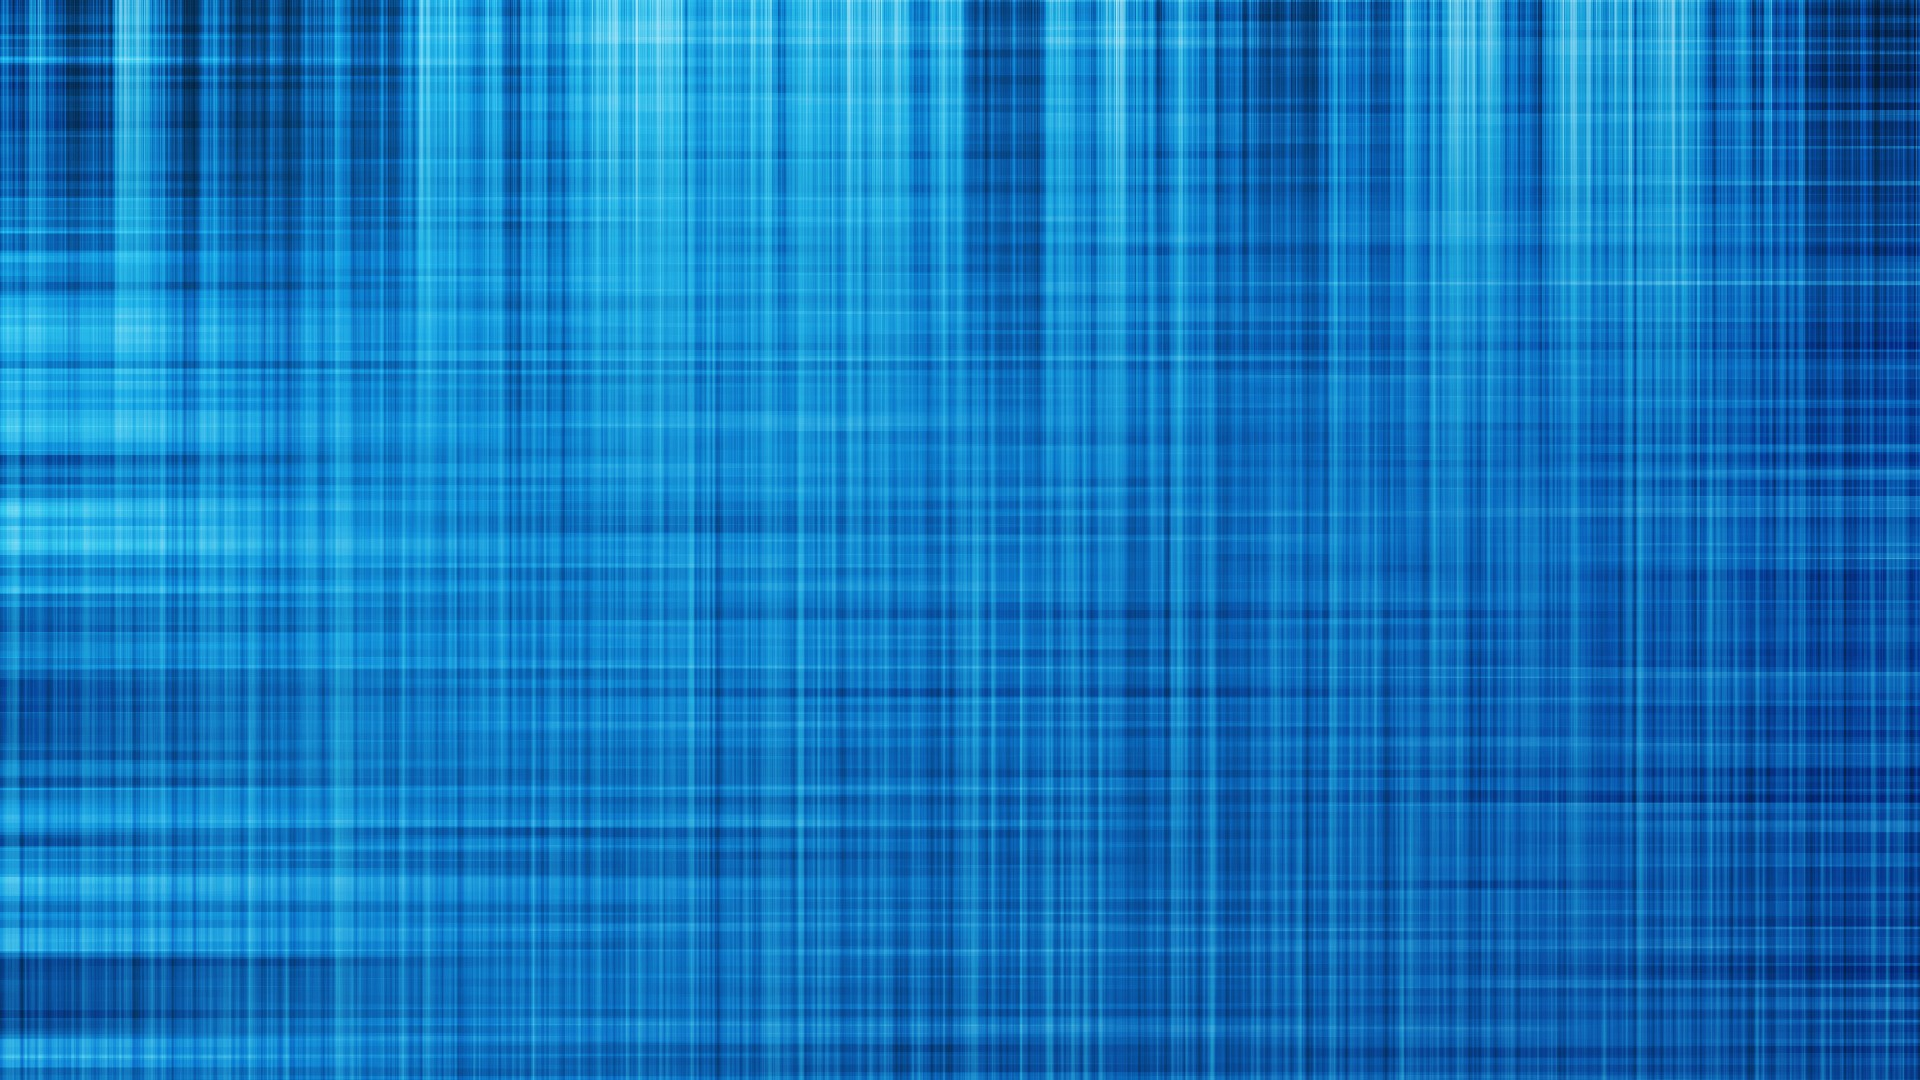 Free Download Blue Wallpaper Textures Images 1920x1080